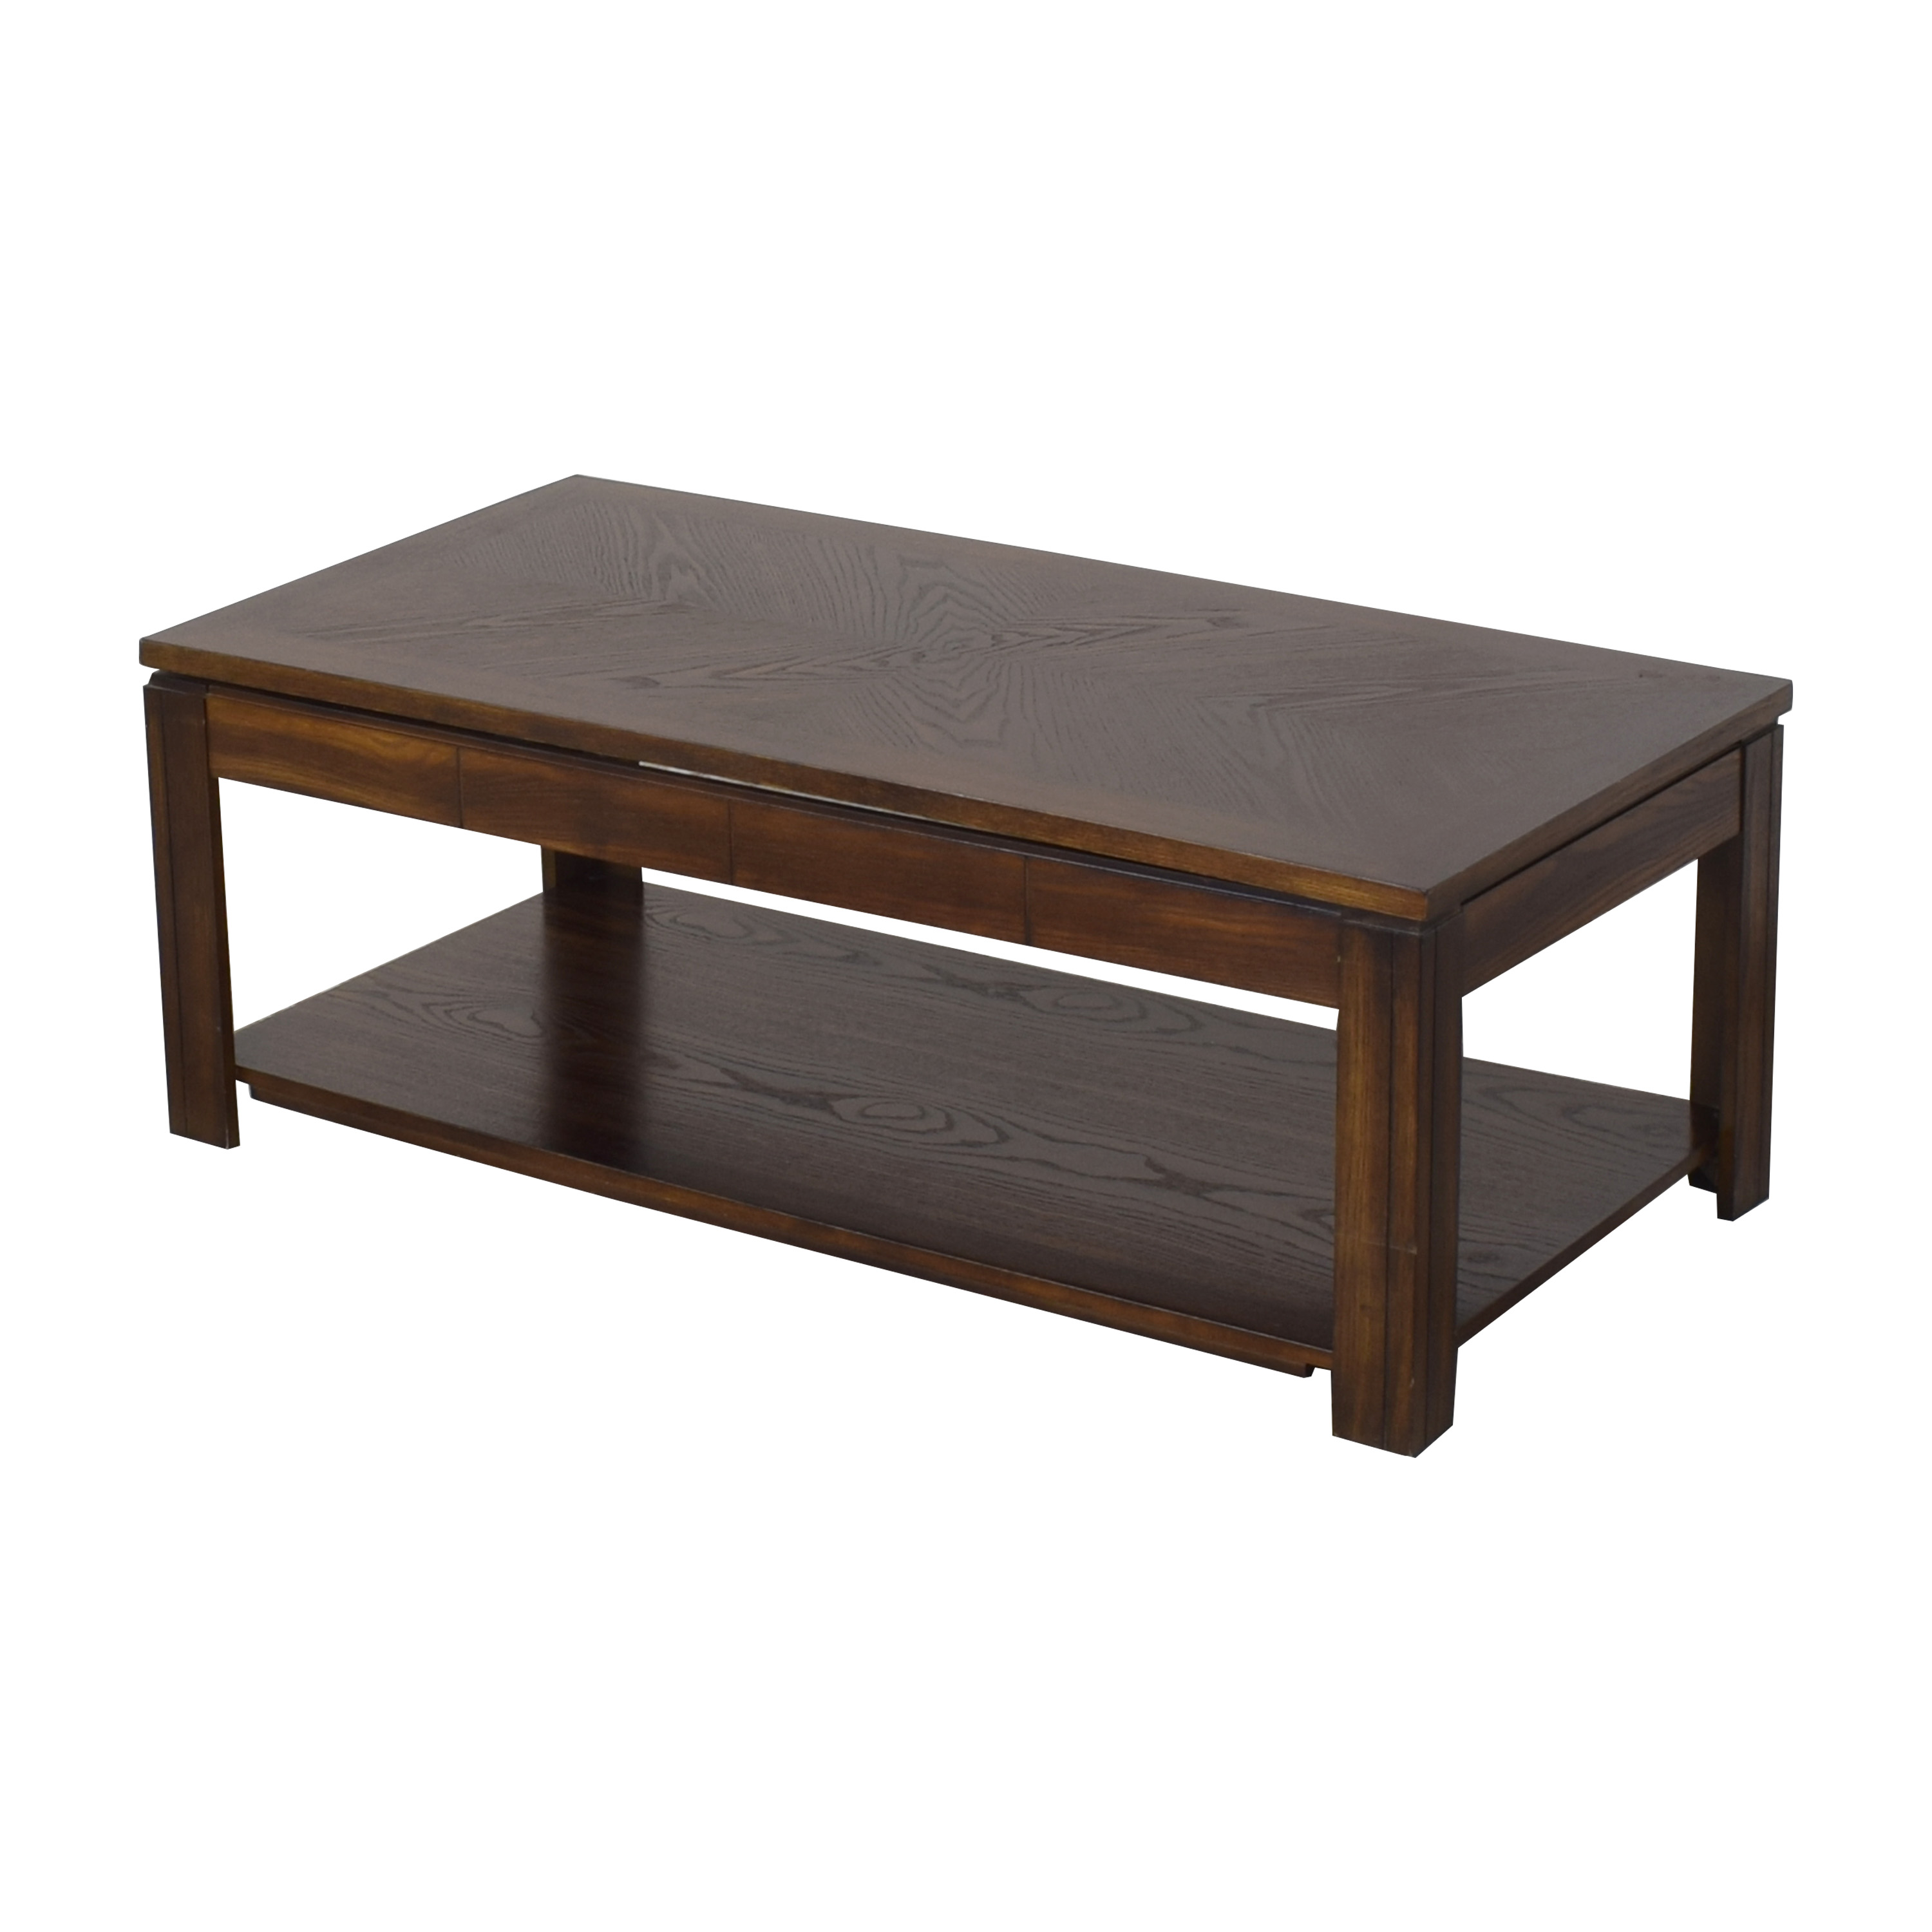 Raymour & Flanigan Raymour & Flanigan Lift Top Storage Coffee Table price